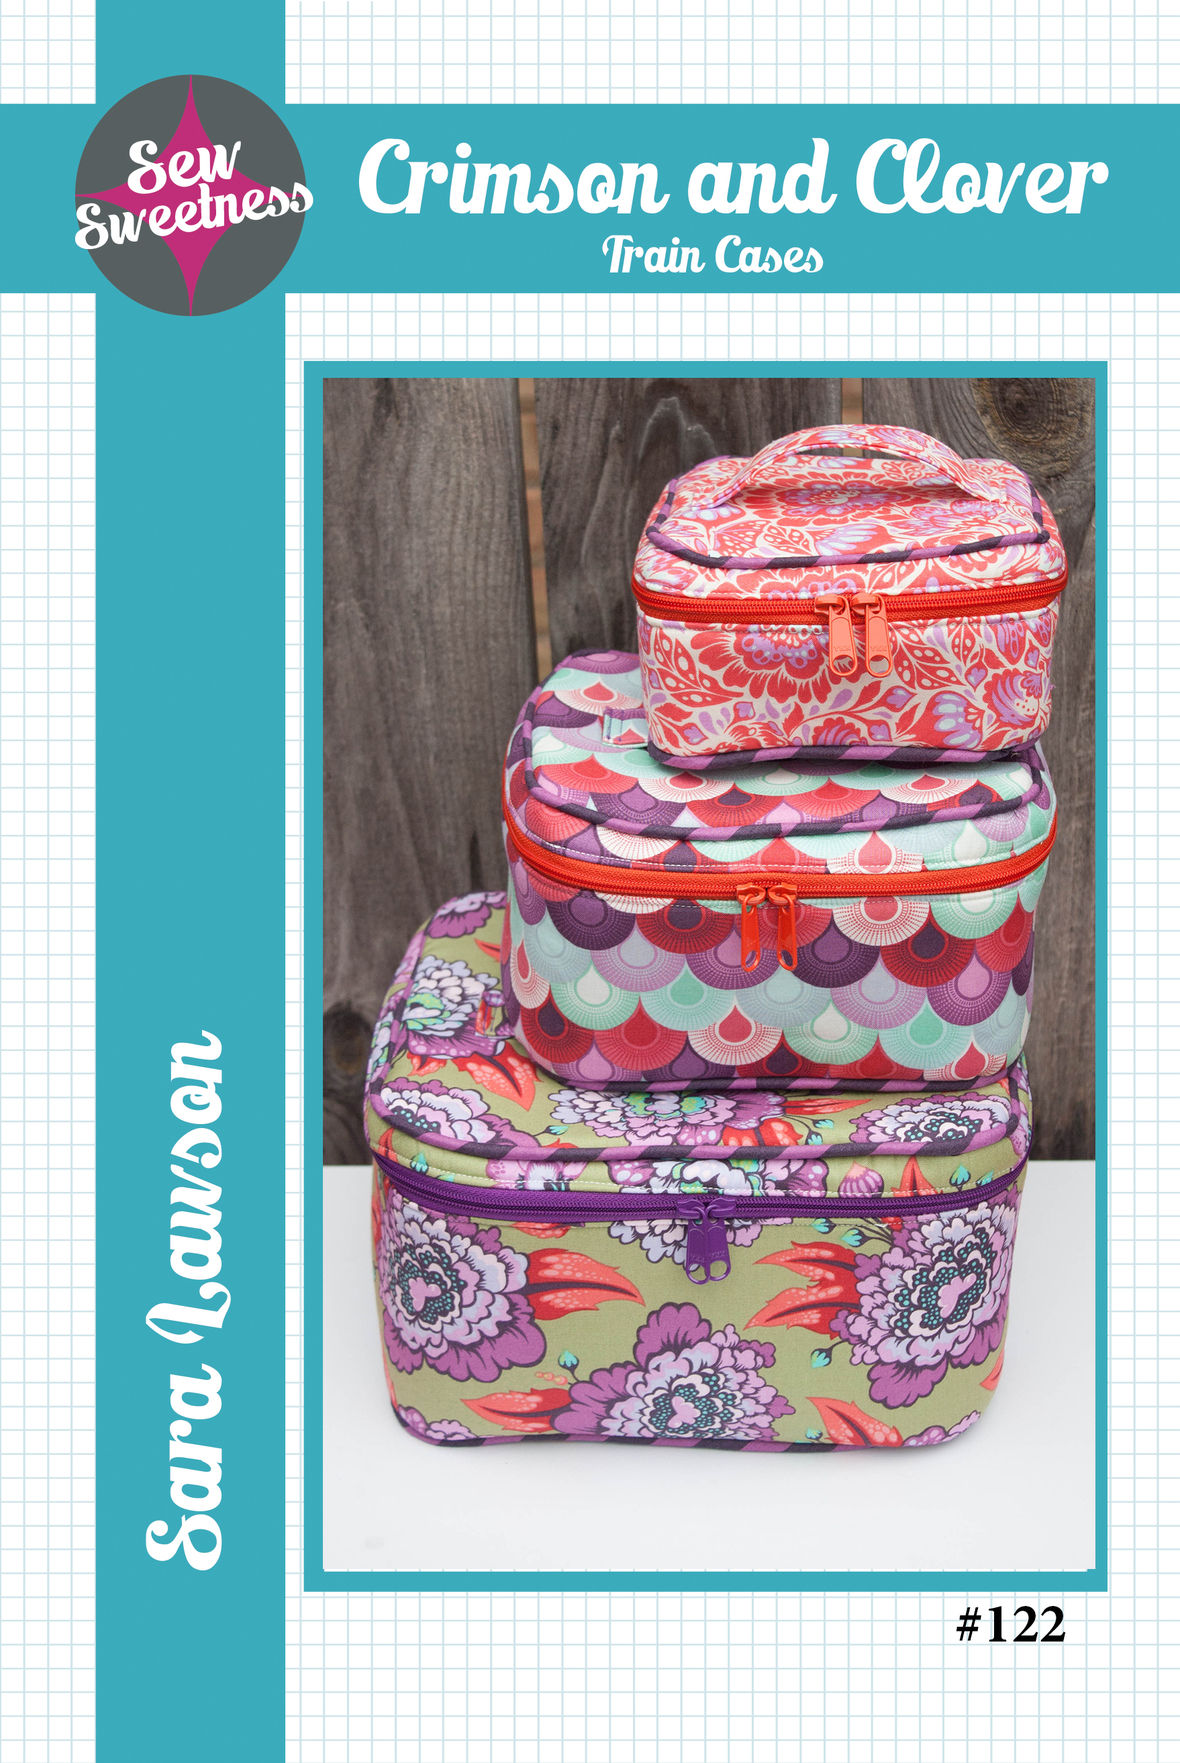 sew sweetness  crimson and clover train cases sewing pattern